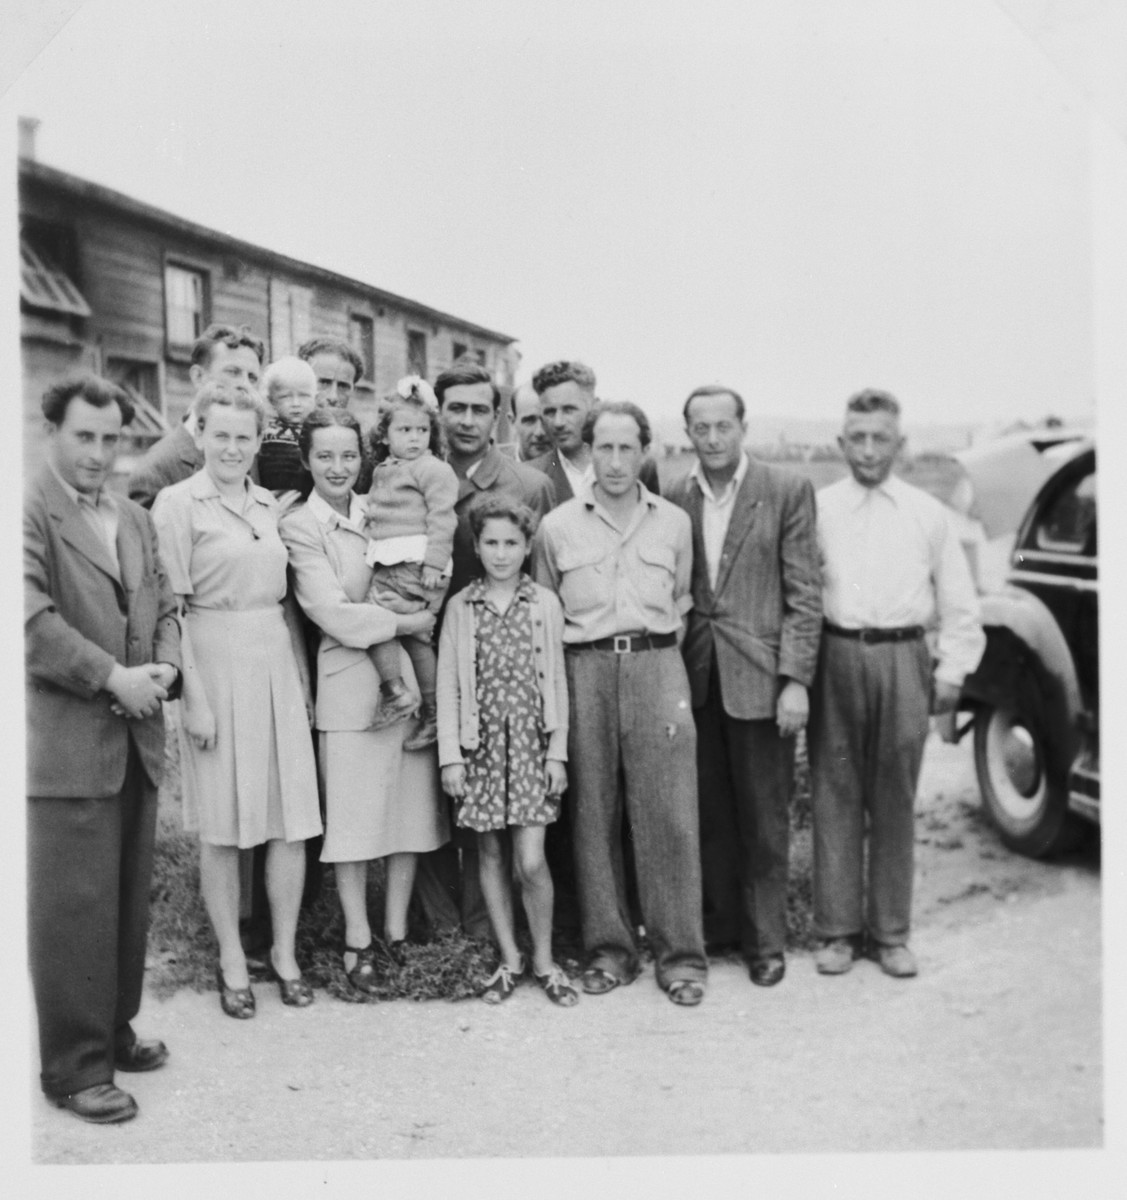 Jewish displaced persons and supporters of the Free Land League gather together in Steyr.